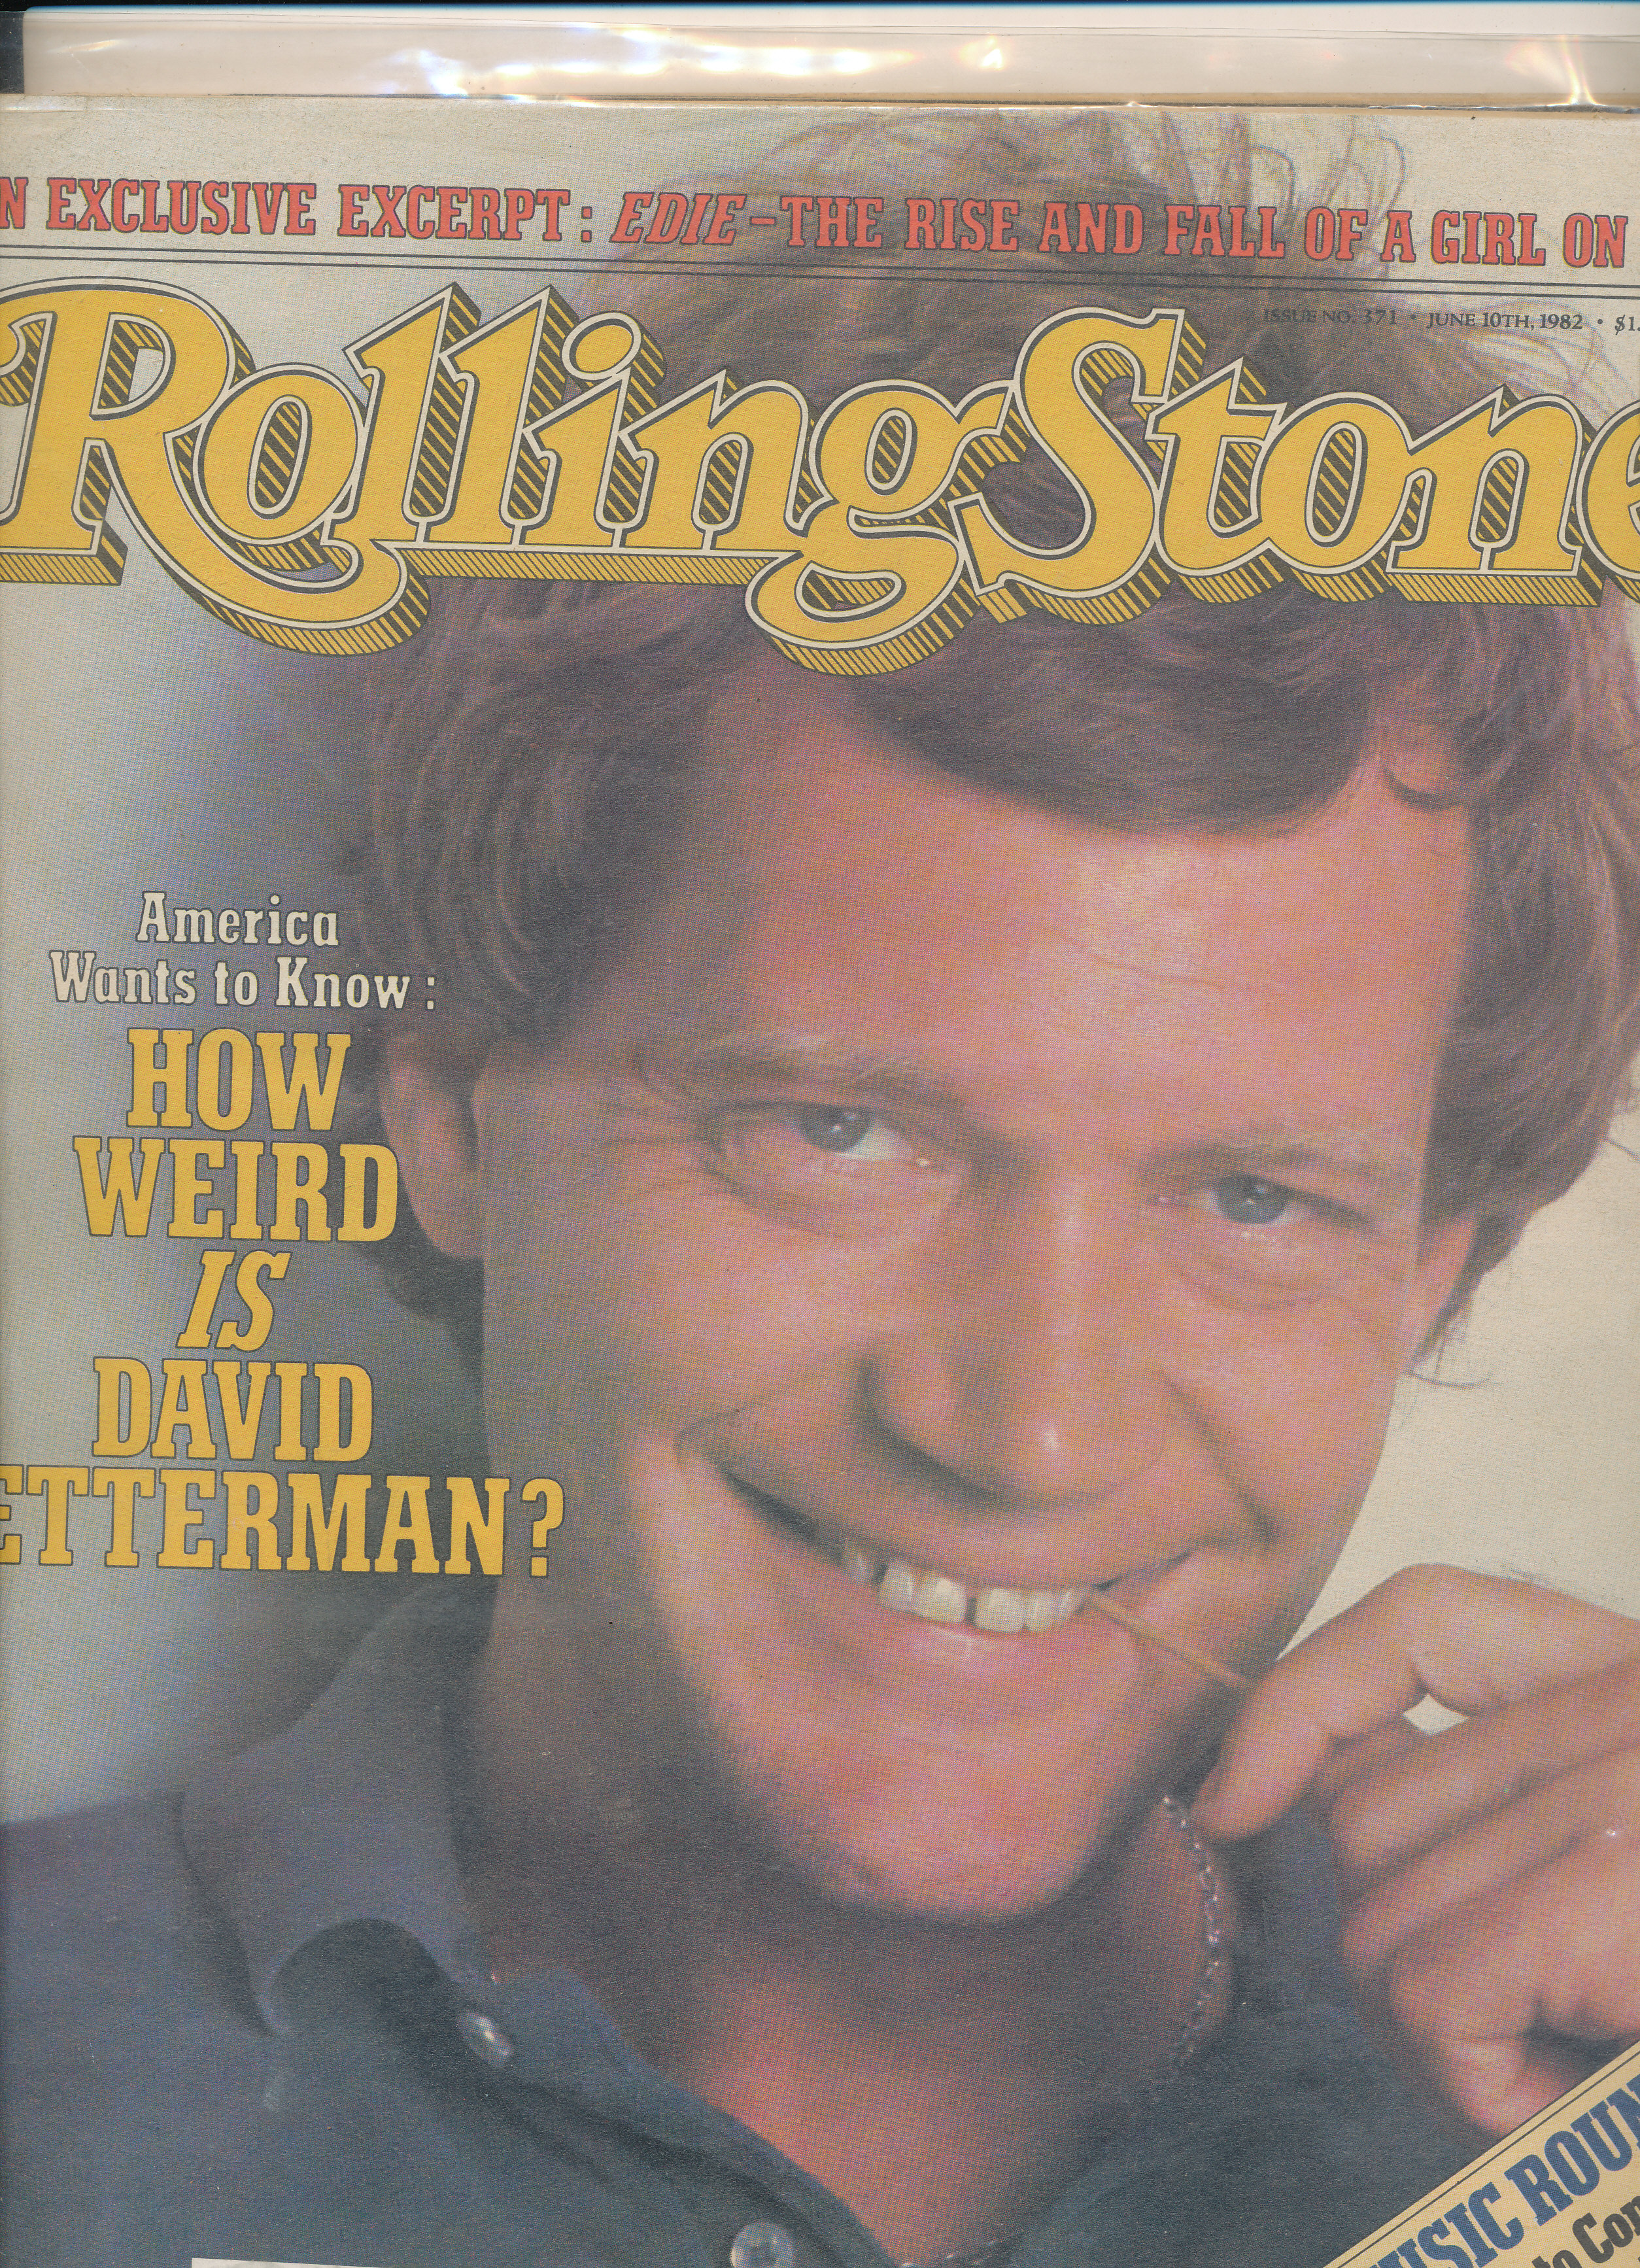 Rolling Stone - How Weird is David Letterman?